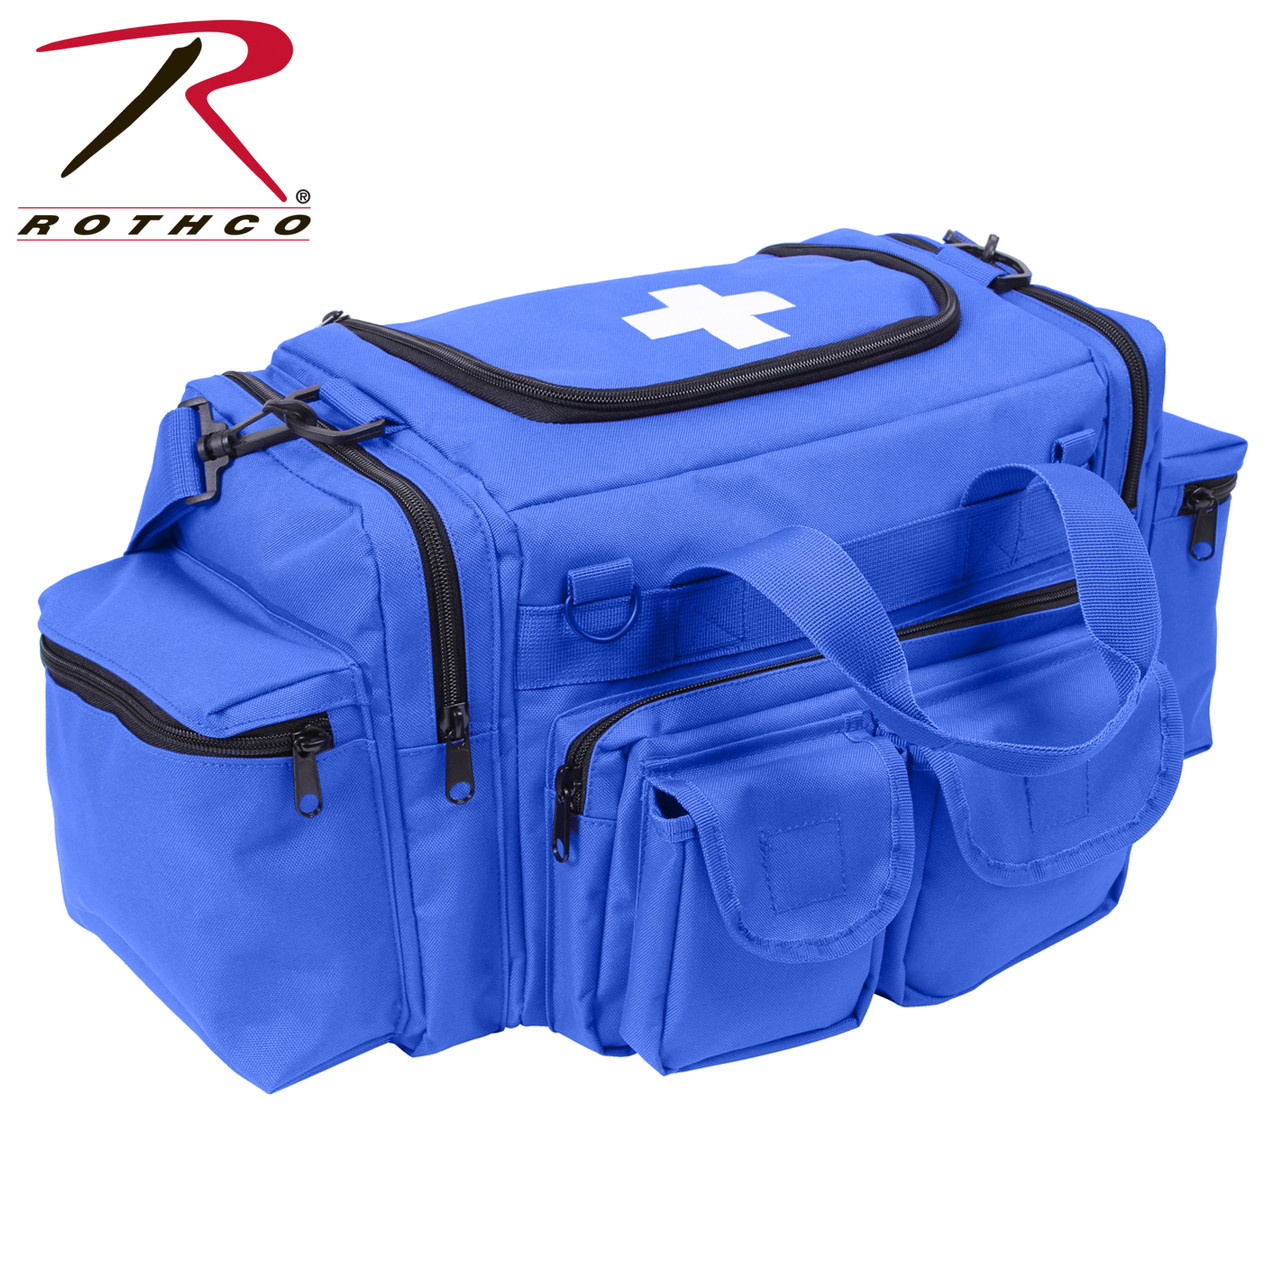 First Responder First Aid Kit Blue